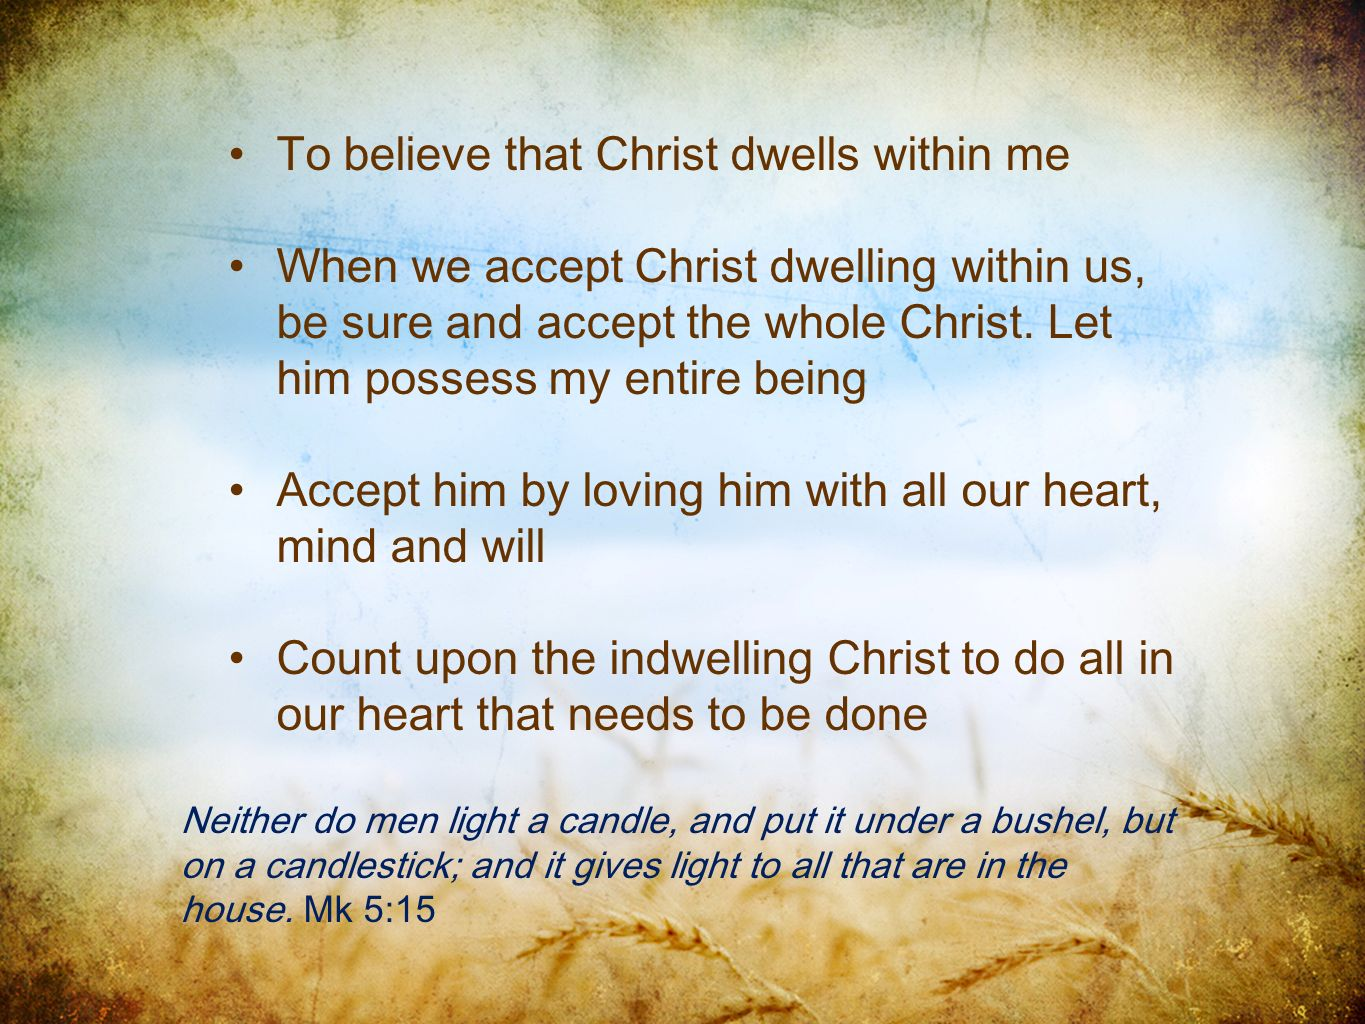 To believe that Christ dwells within me When we accept Christ dwelling within us, be sure and accept the whole Christ. Let him possess my entire being